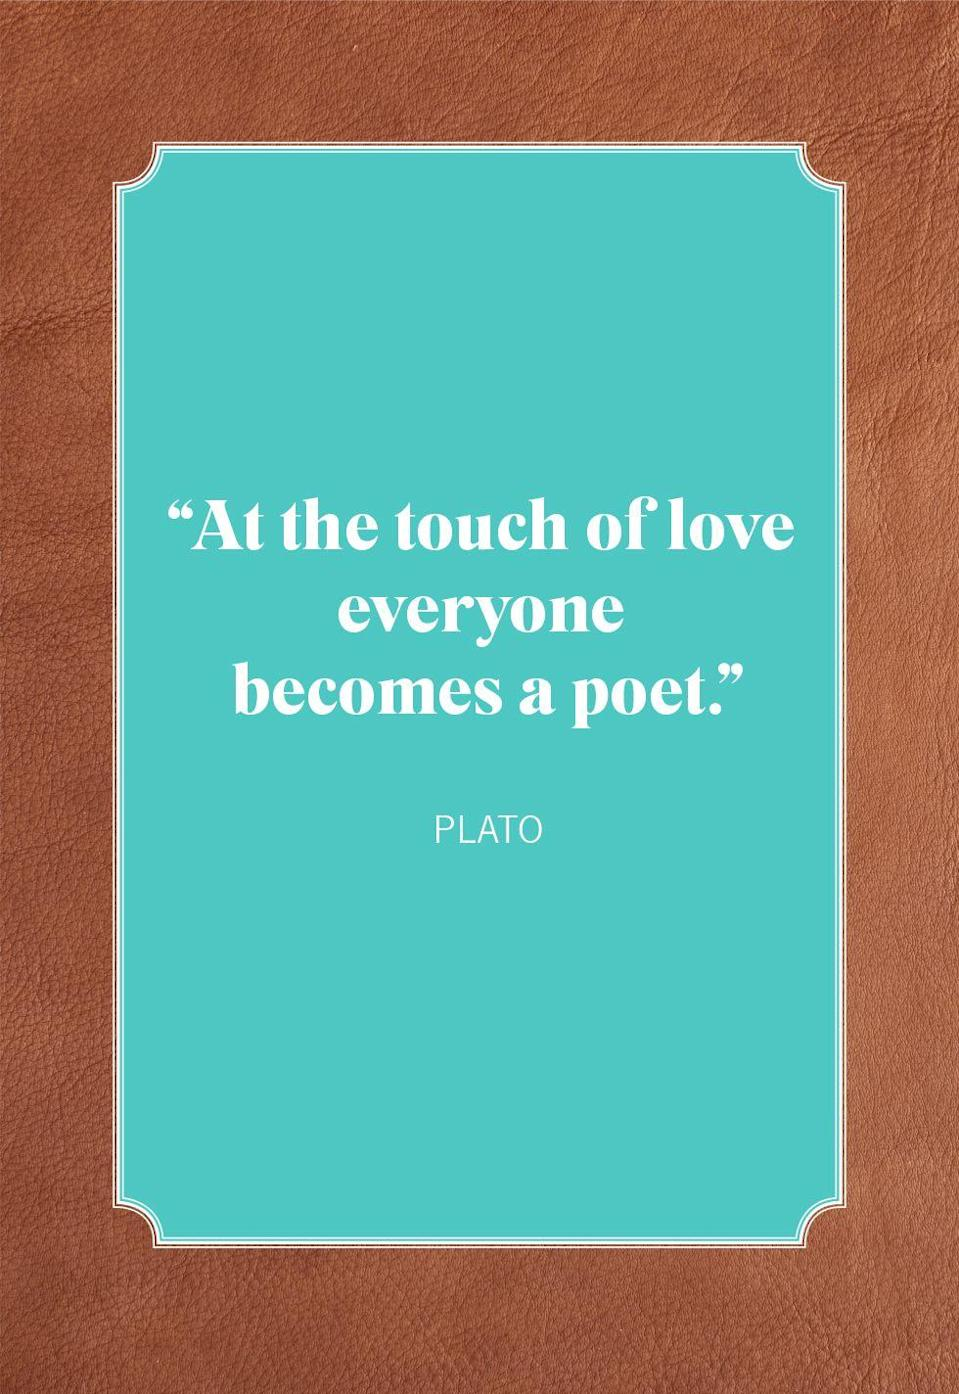 "<p>""At the touch of love everyone becomes a poet.""</p>"